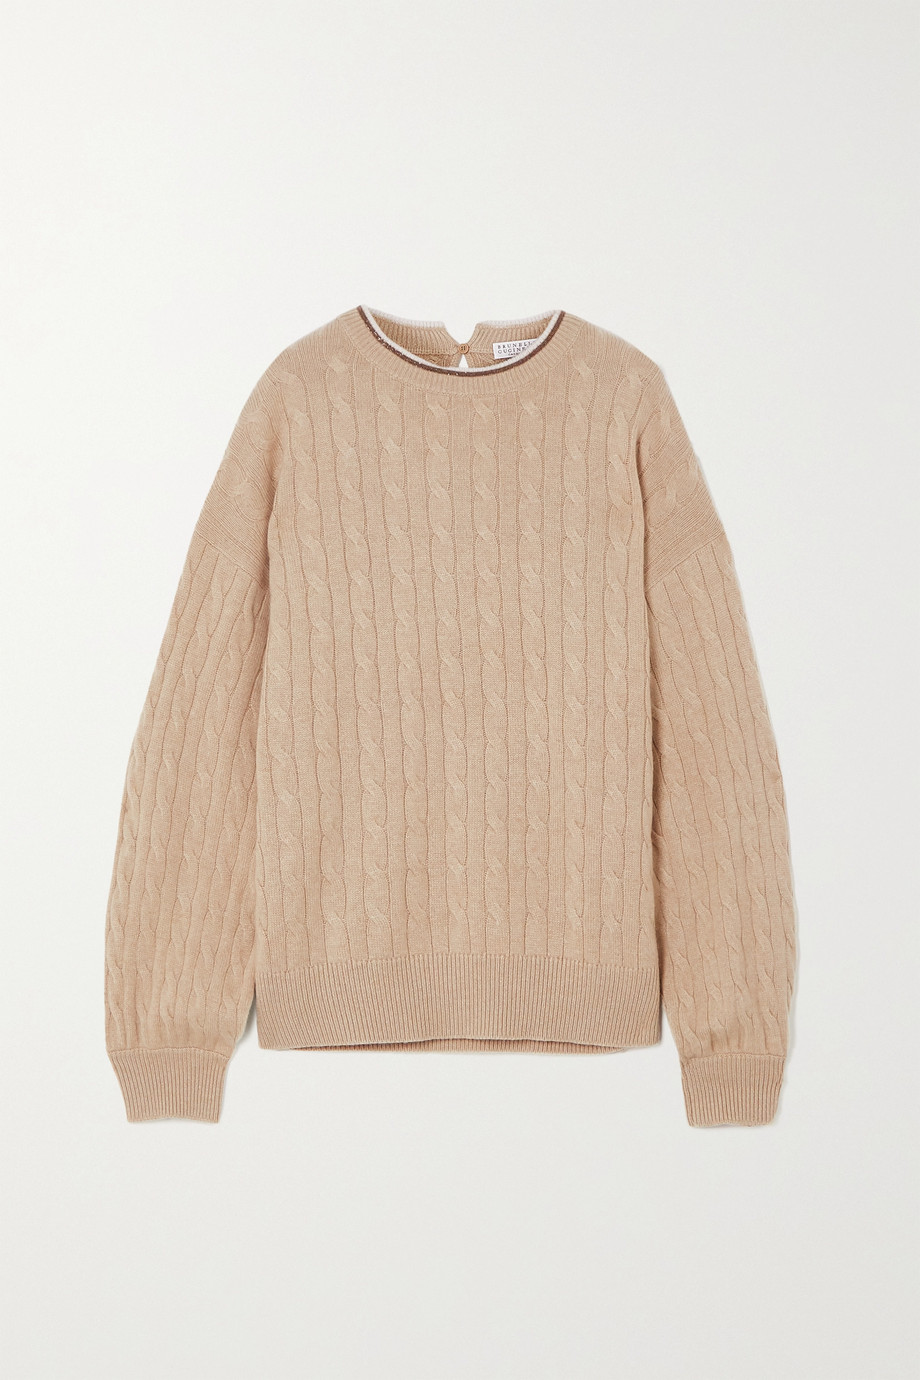 Brunello Cucinelli Bead-embellished cable-knit cashmere sweater